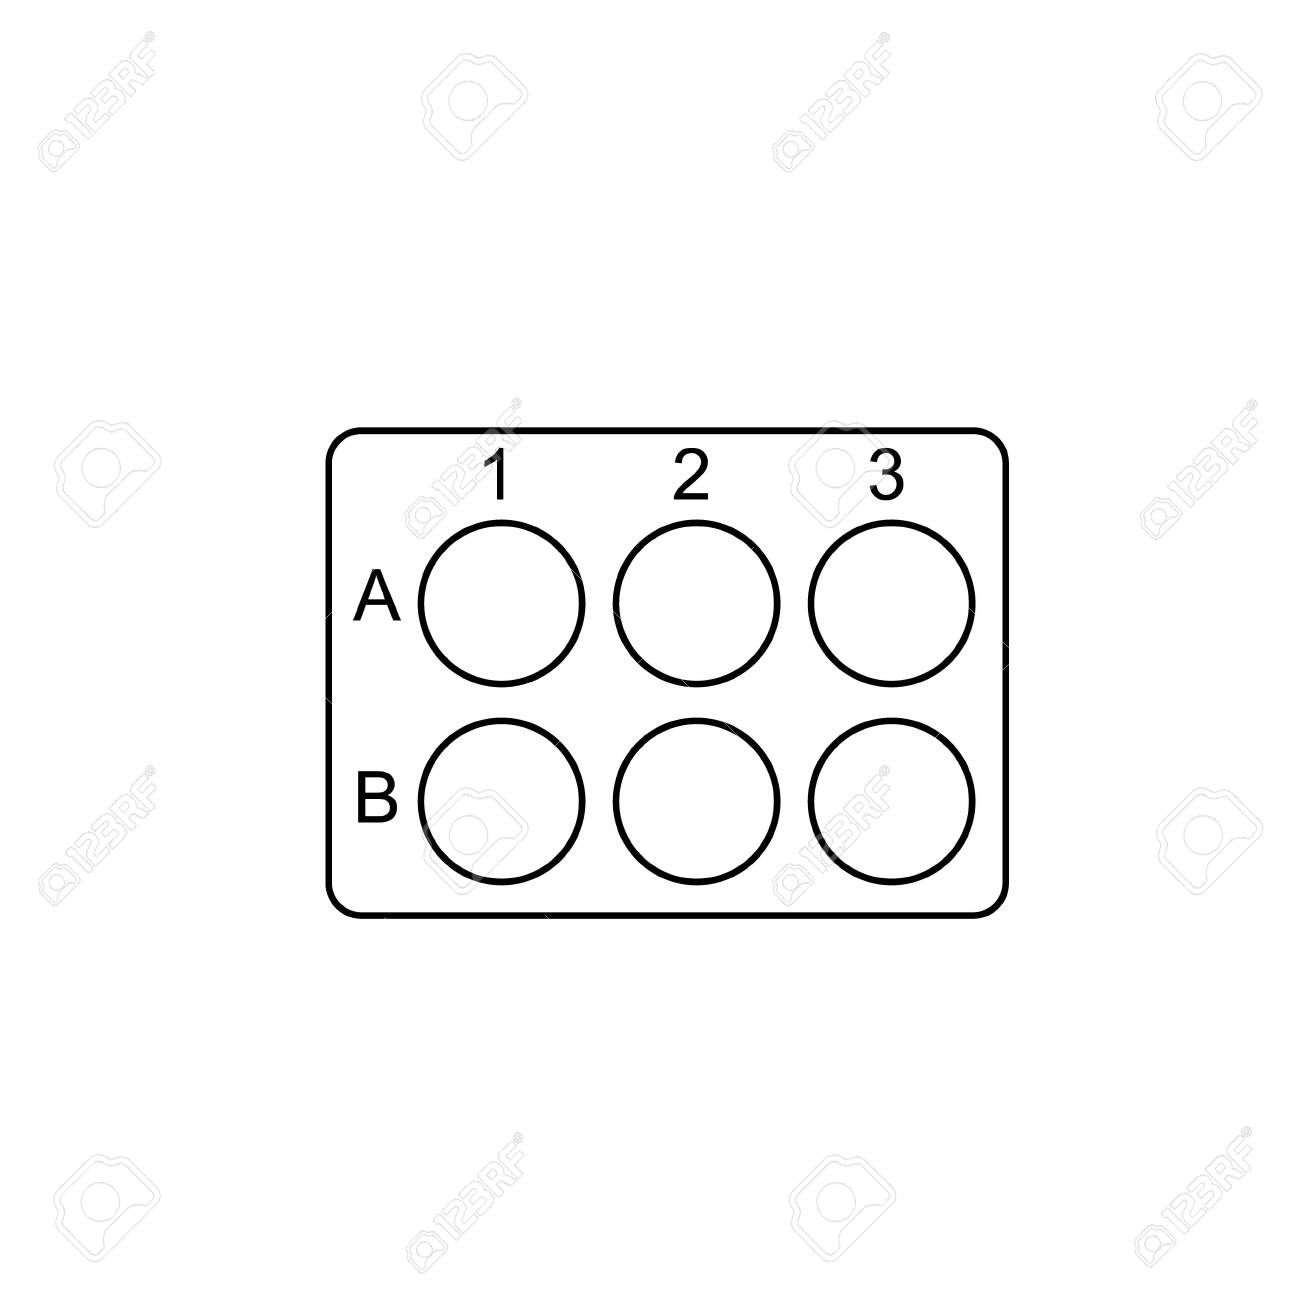 6 Well plate outline icon. Clipart image isolated on white background - 152540059